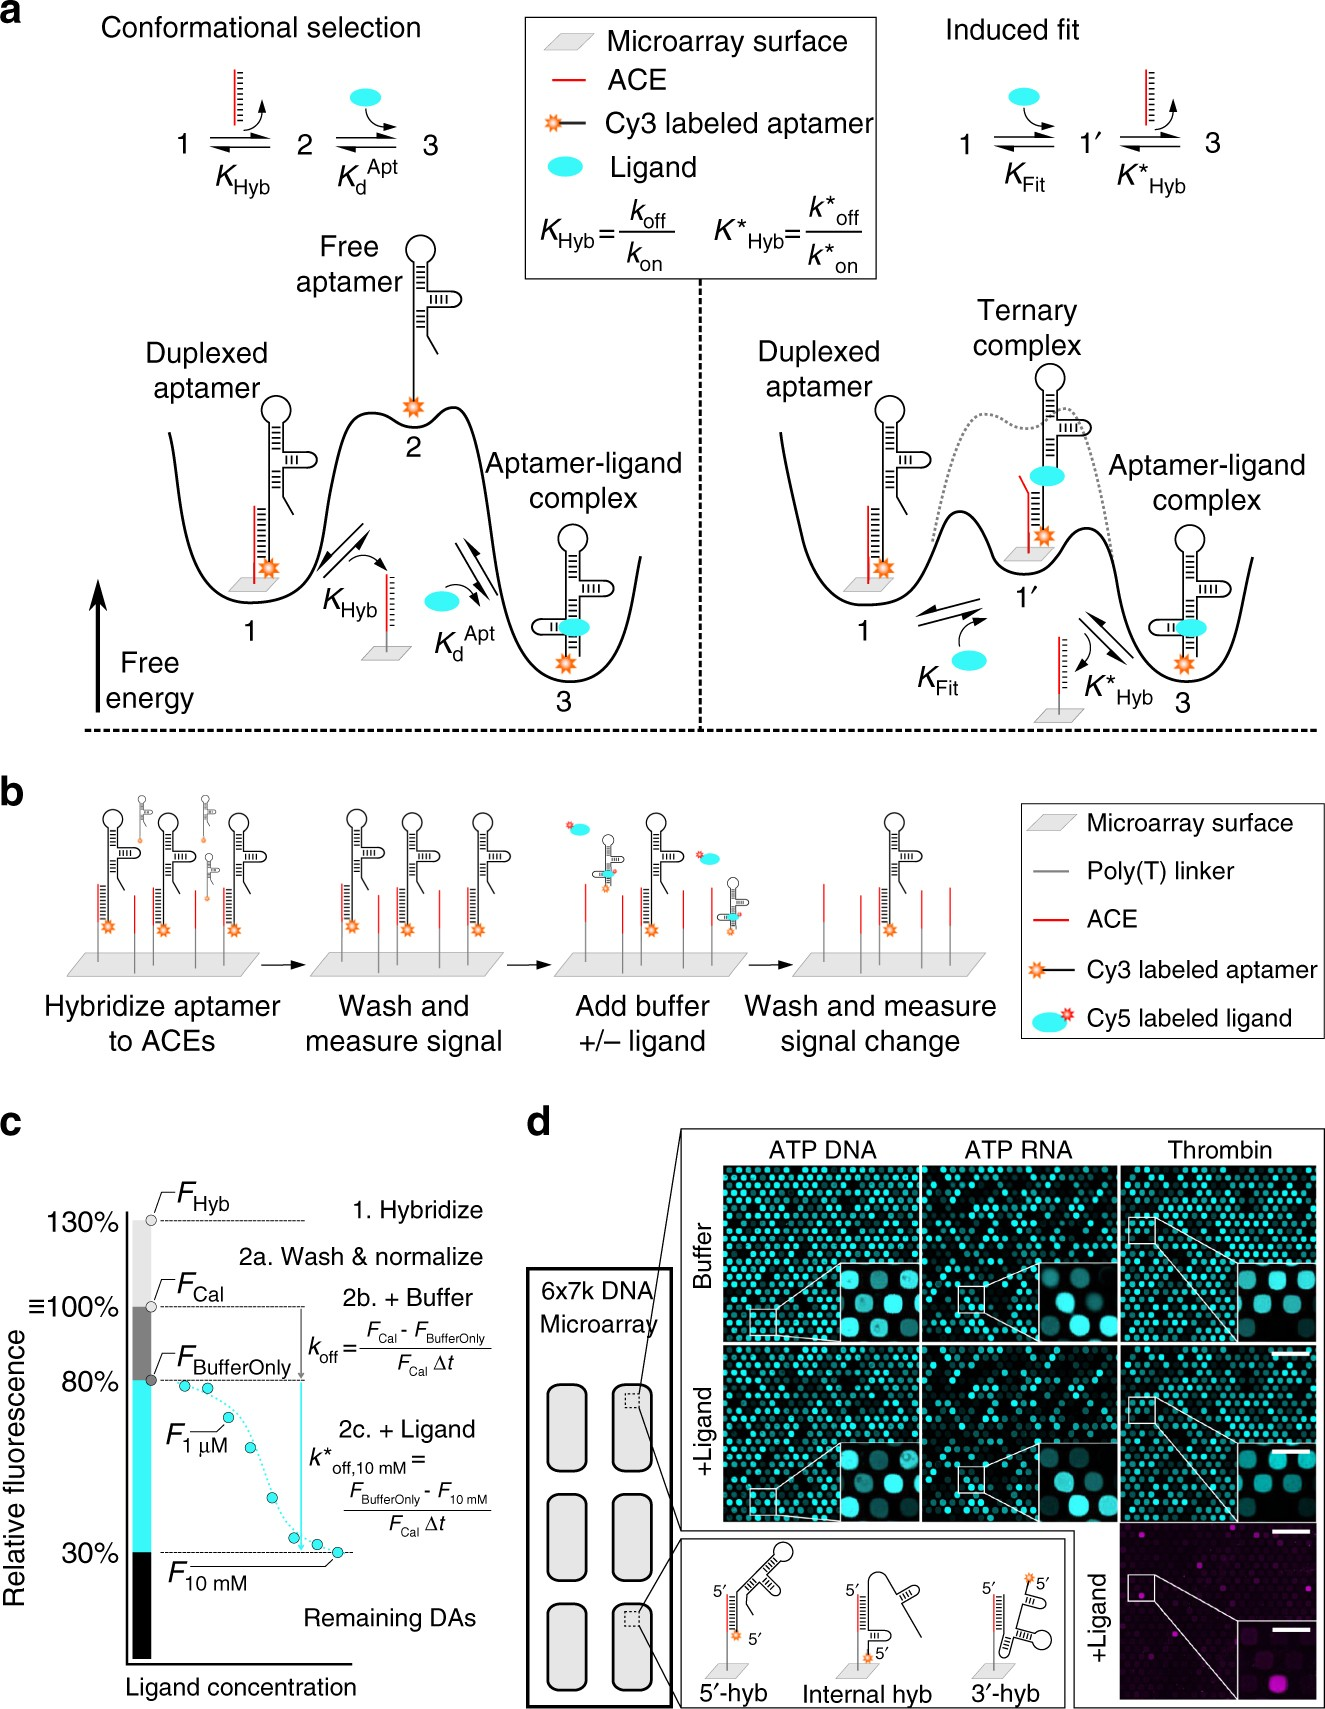 What Does Hyb Mean >> Comprehensive Profiling Of The Ligand Binding Landscapes Of Duplexed